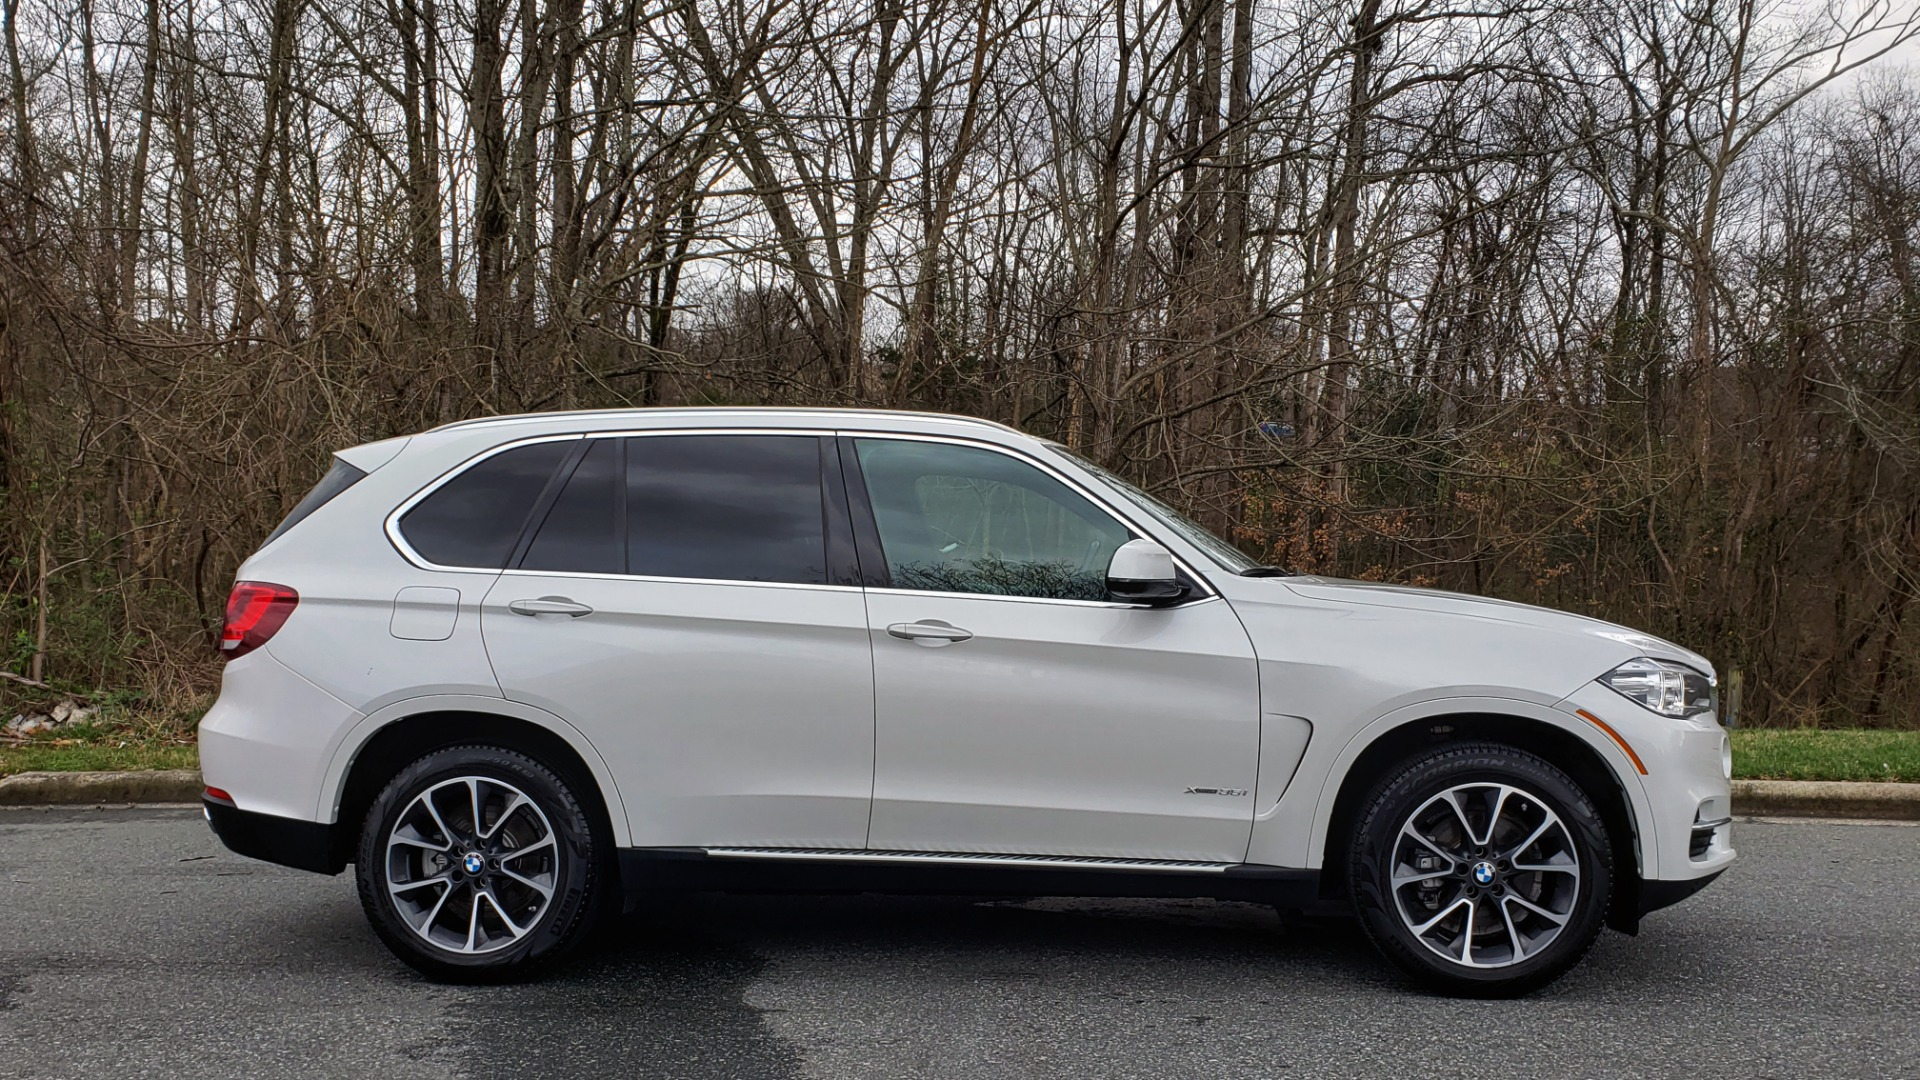 Used 2017 BMW X5 XDRIVE35I / NAV / HUD / DRVR ASST / SUNROOF / REARVIEW for sale Sold at Formula Imports in Charlotte NC 28227 5